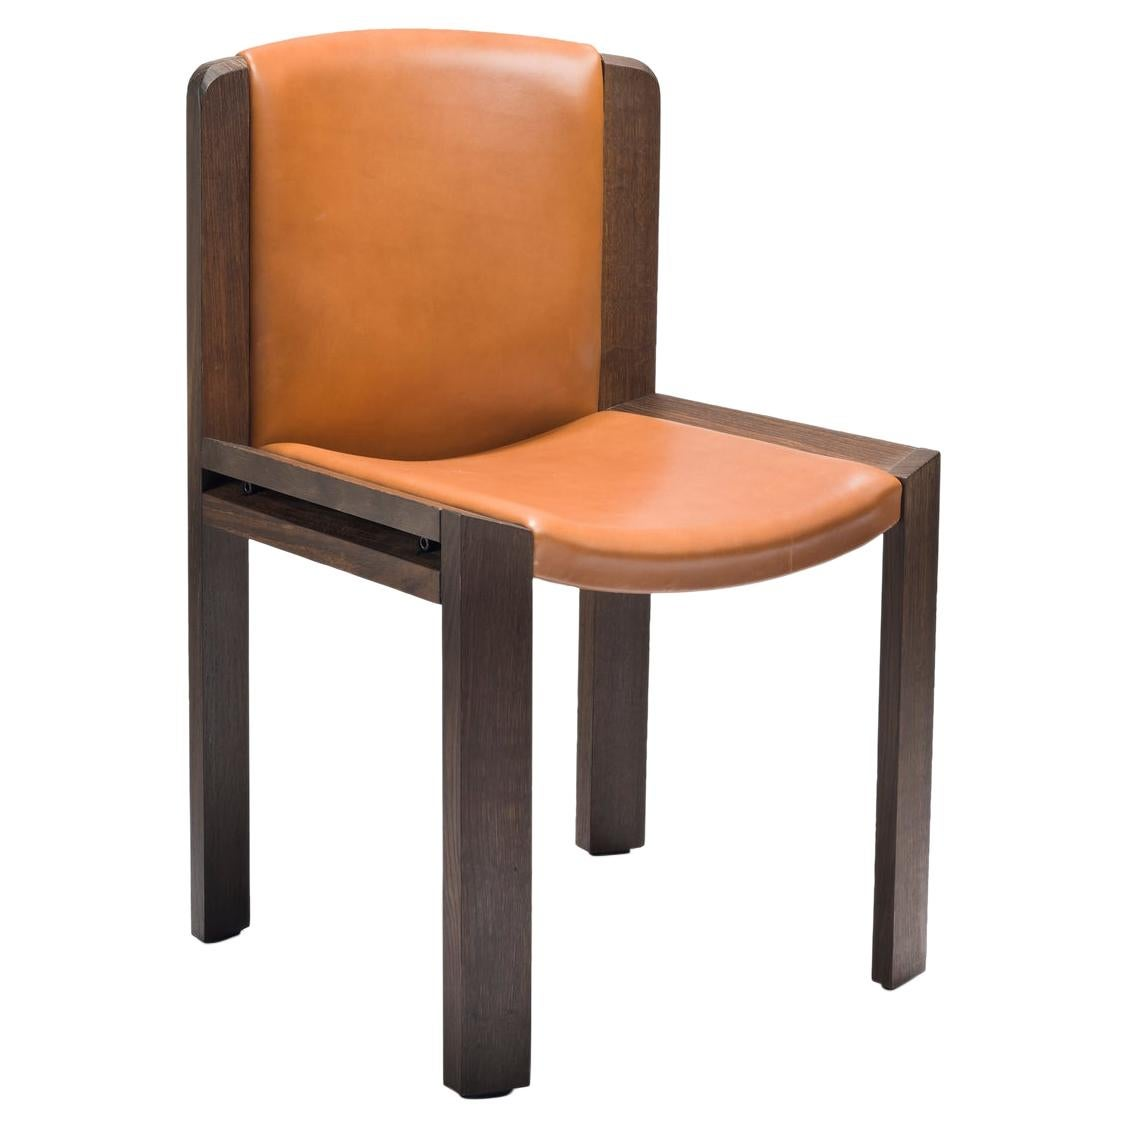 Joe Colombo 'Chair 300' Wood and Sørensen Leather Chair by Karakter